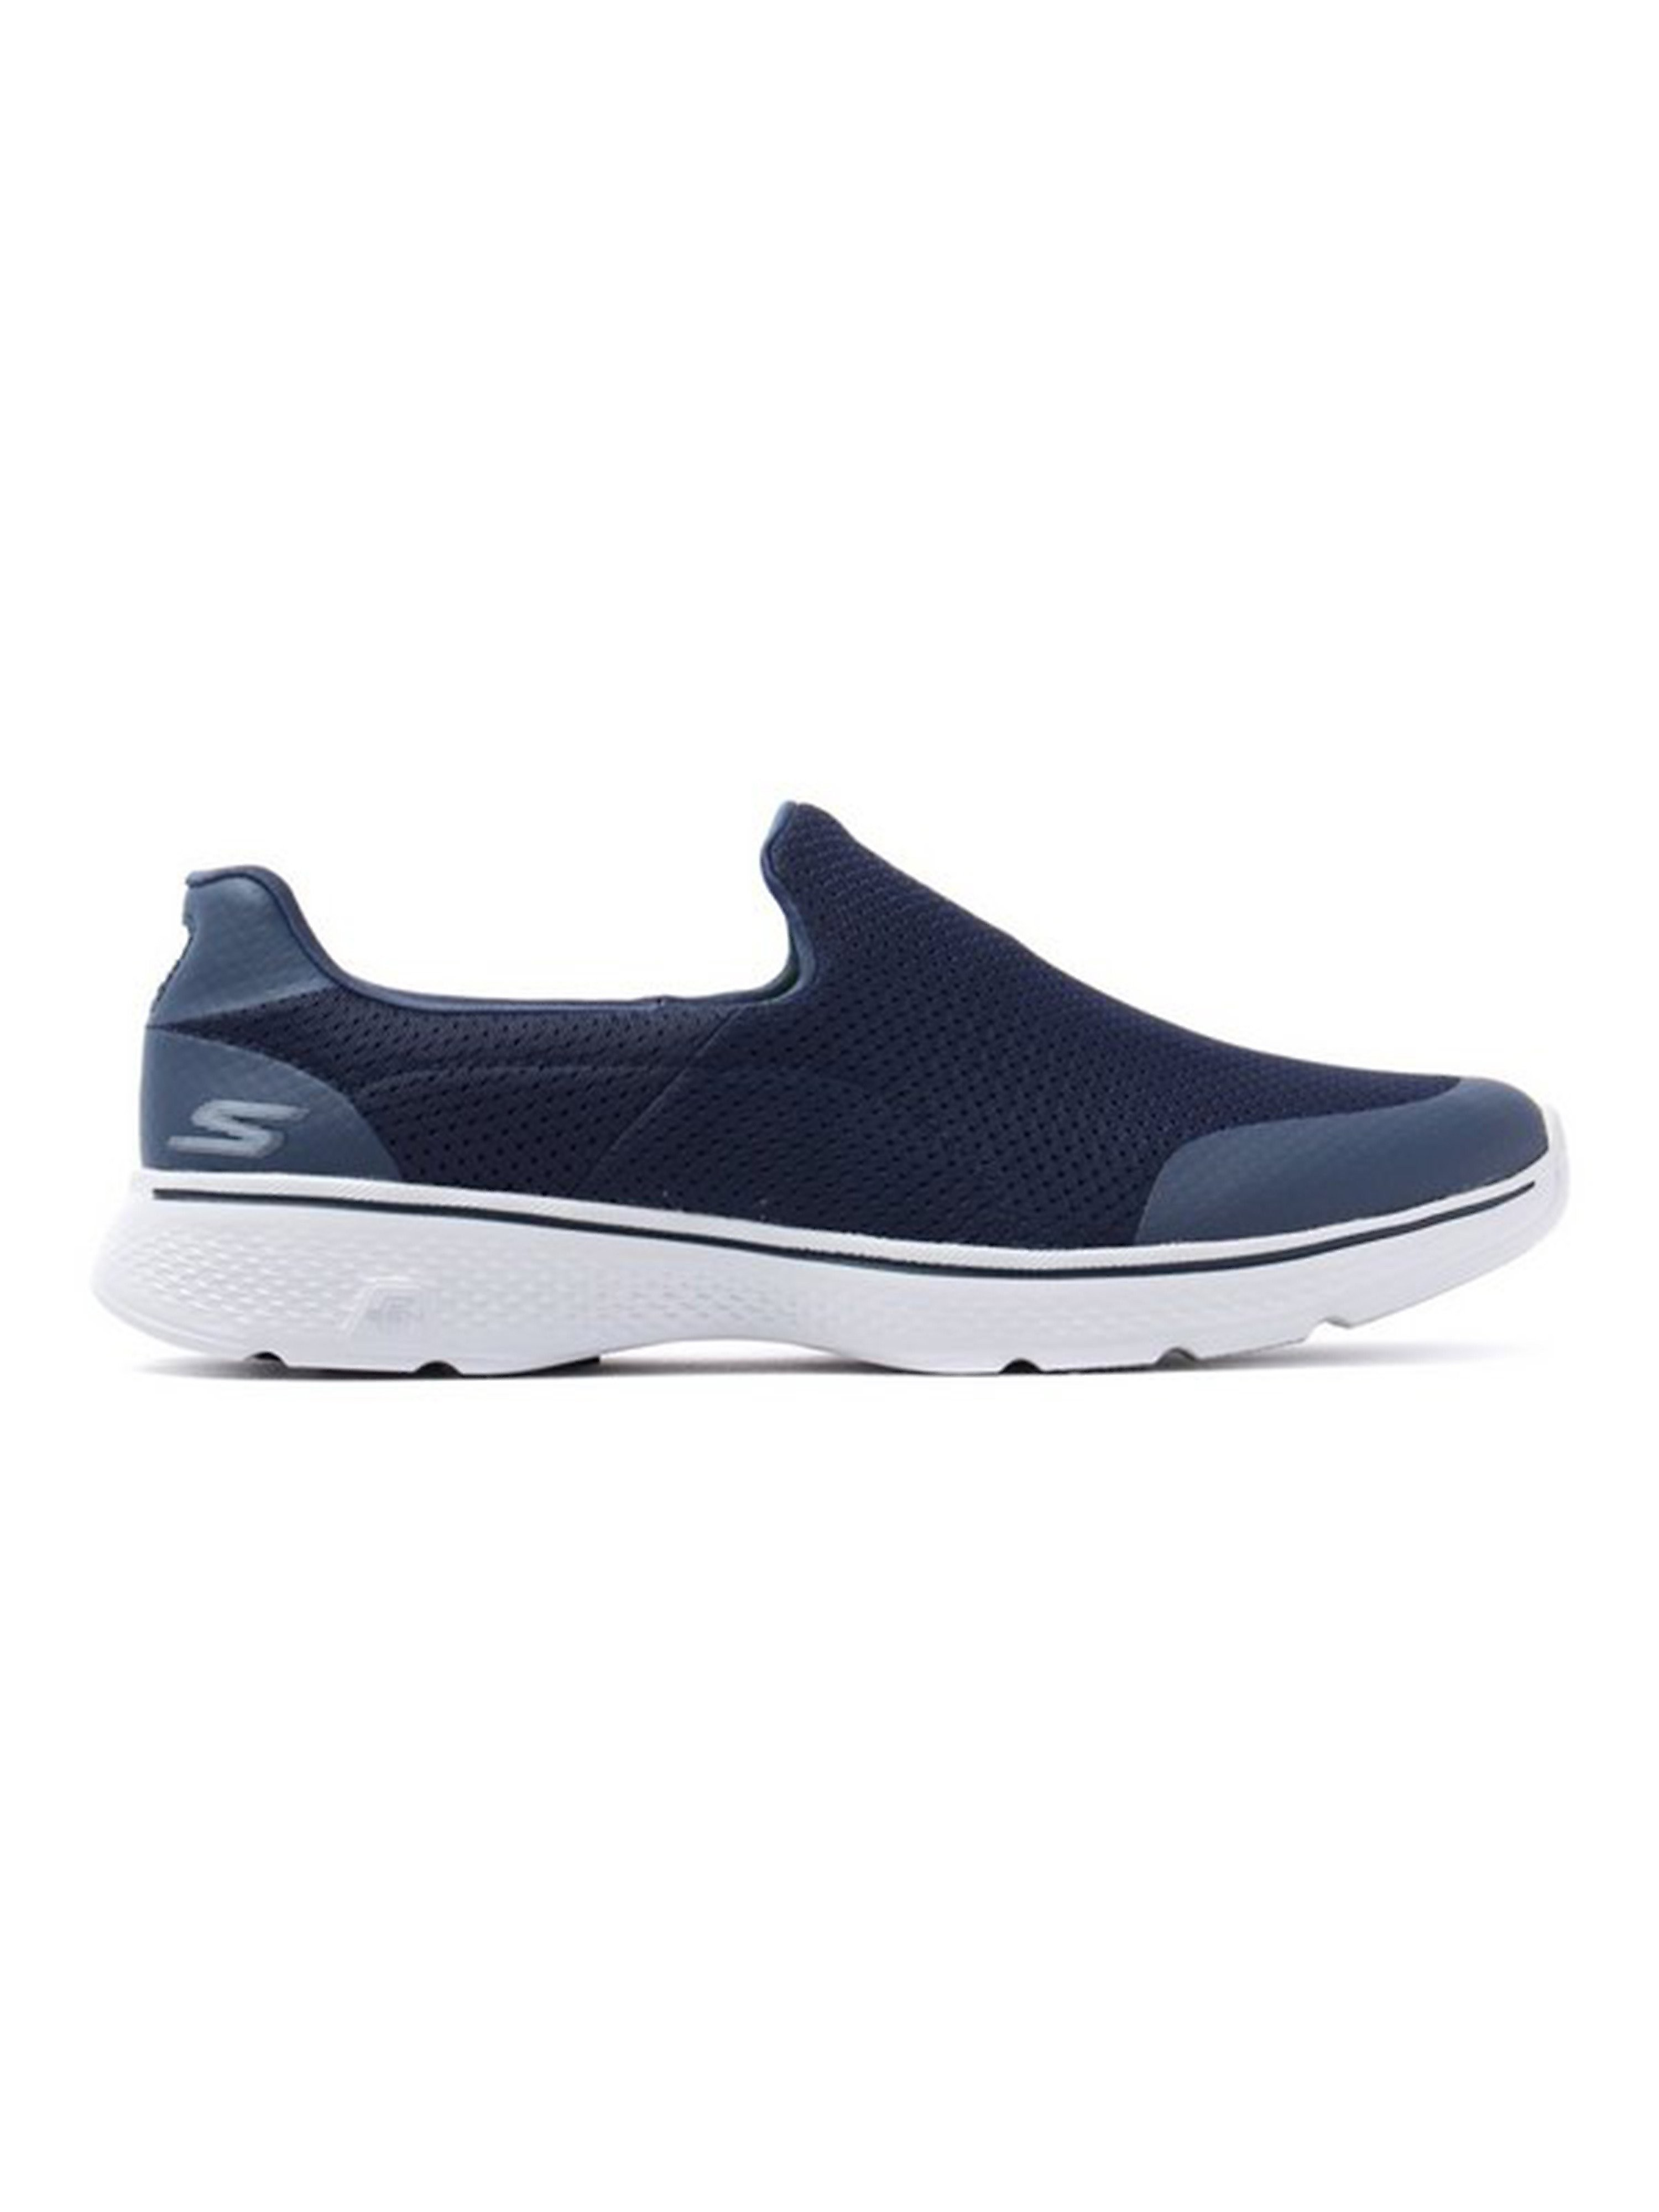 Skechers Men's Go Walk 4 Incredible Trainers - Navy/Grey